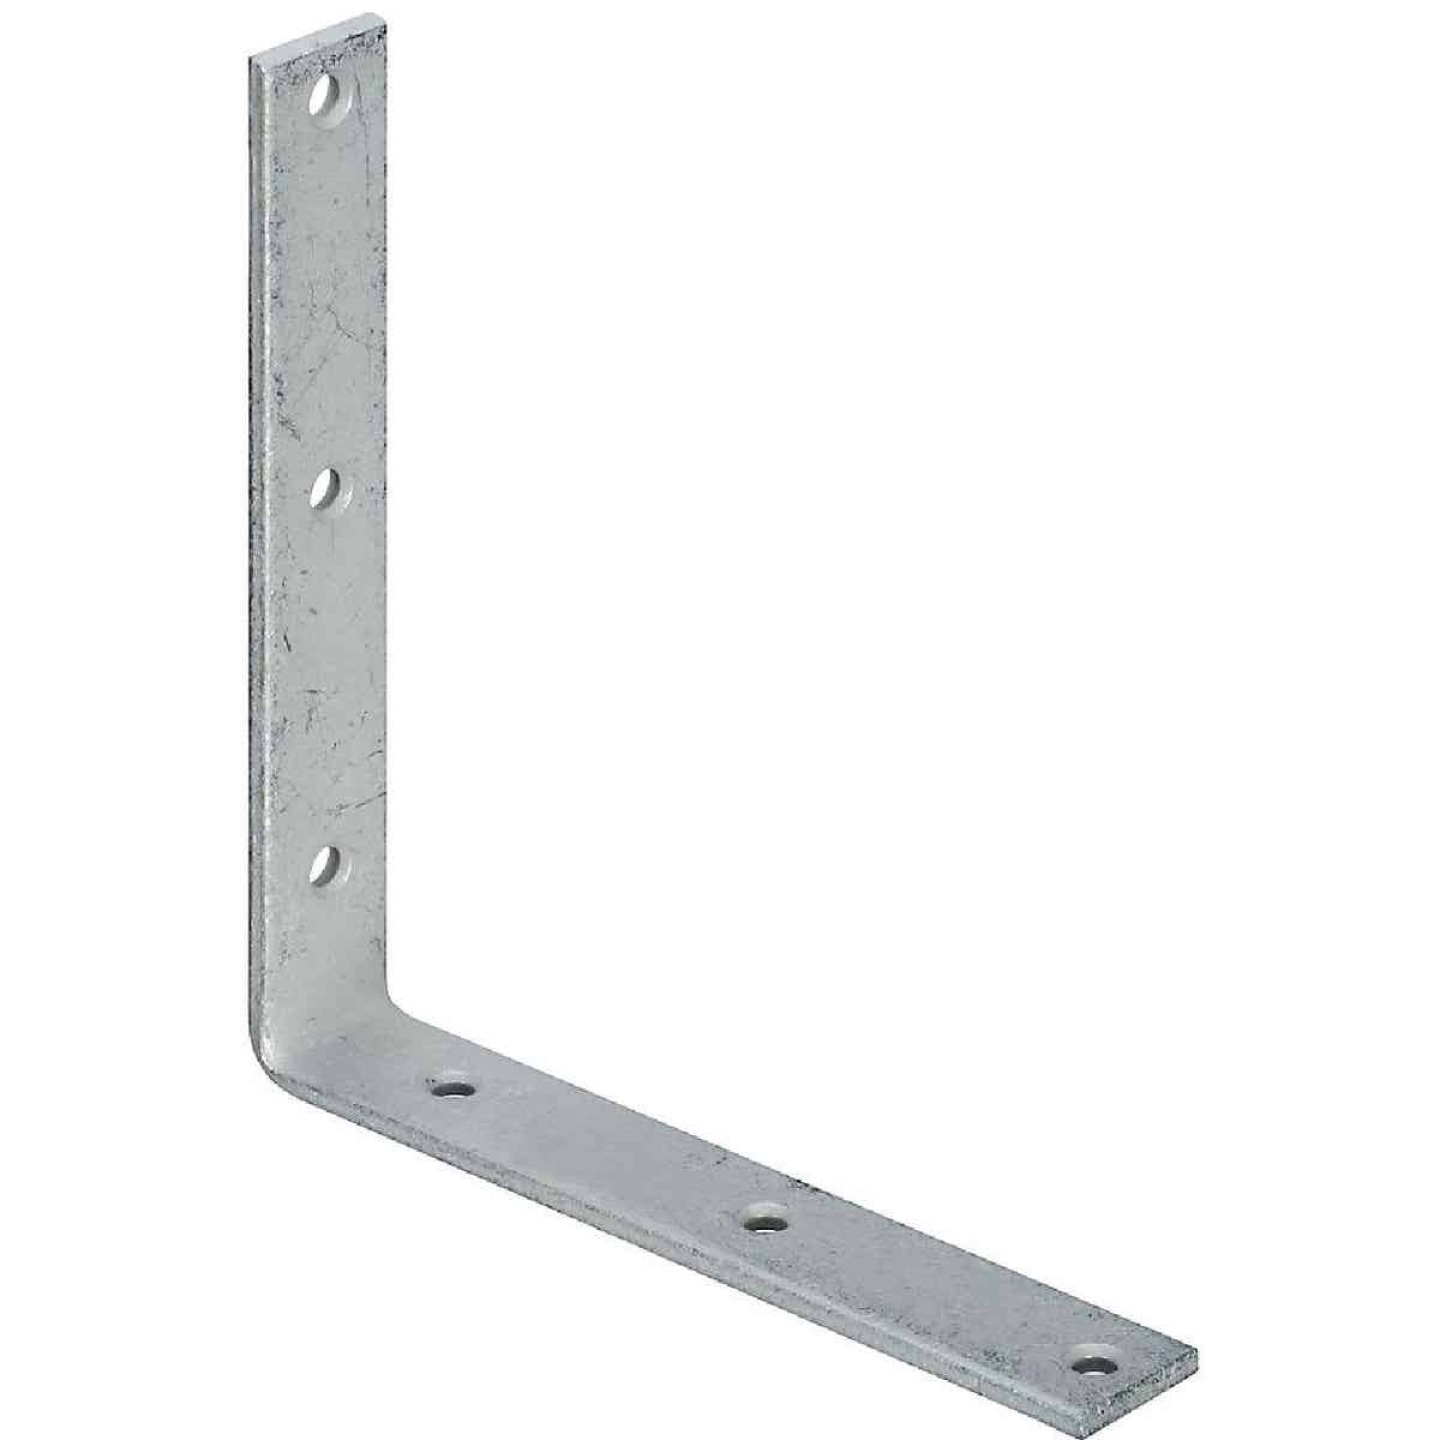 National Catalog 115 8 In. x 1-1/4 In. Galvanized Corner Brace Image 1